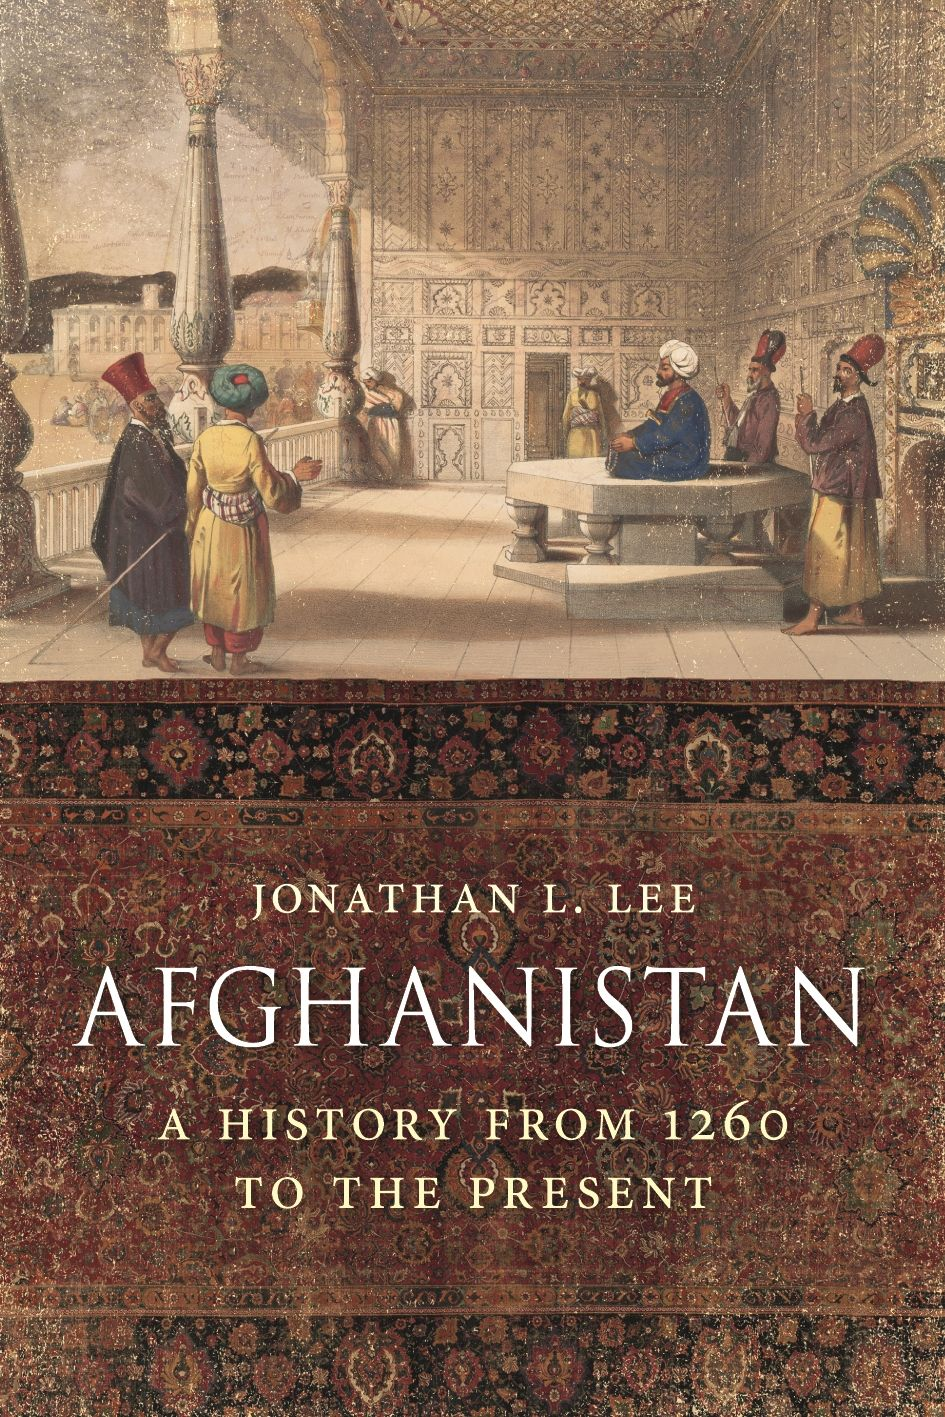 Afghanistan: A History from 1260 to the Present